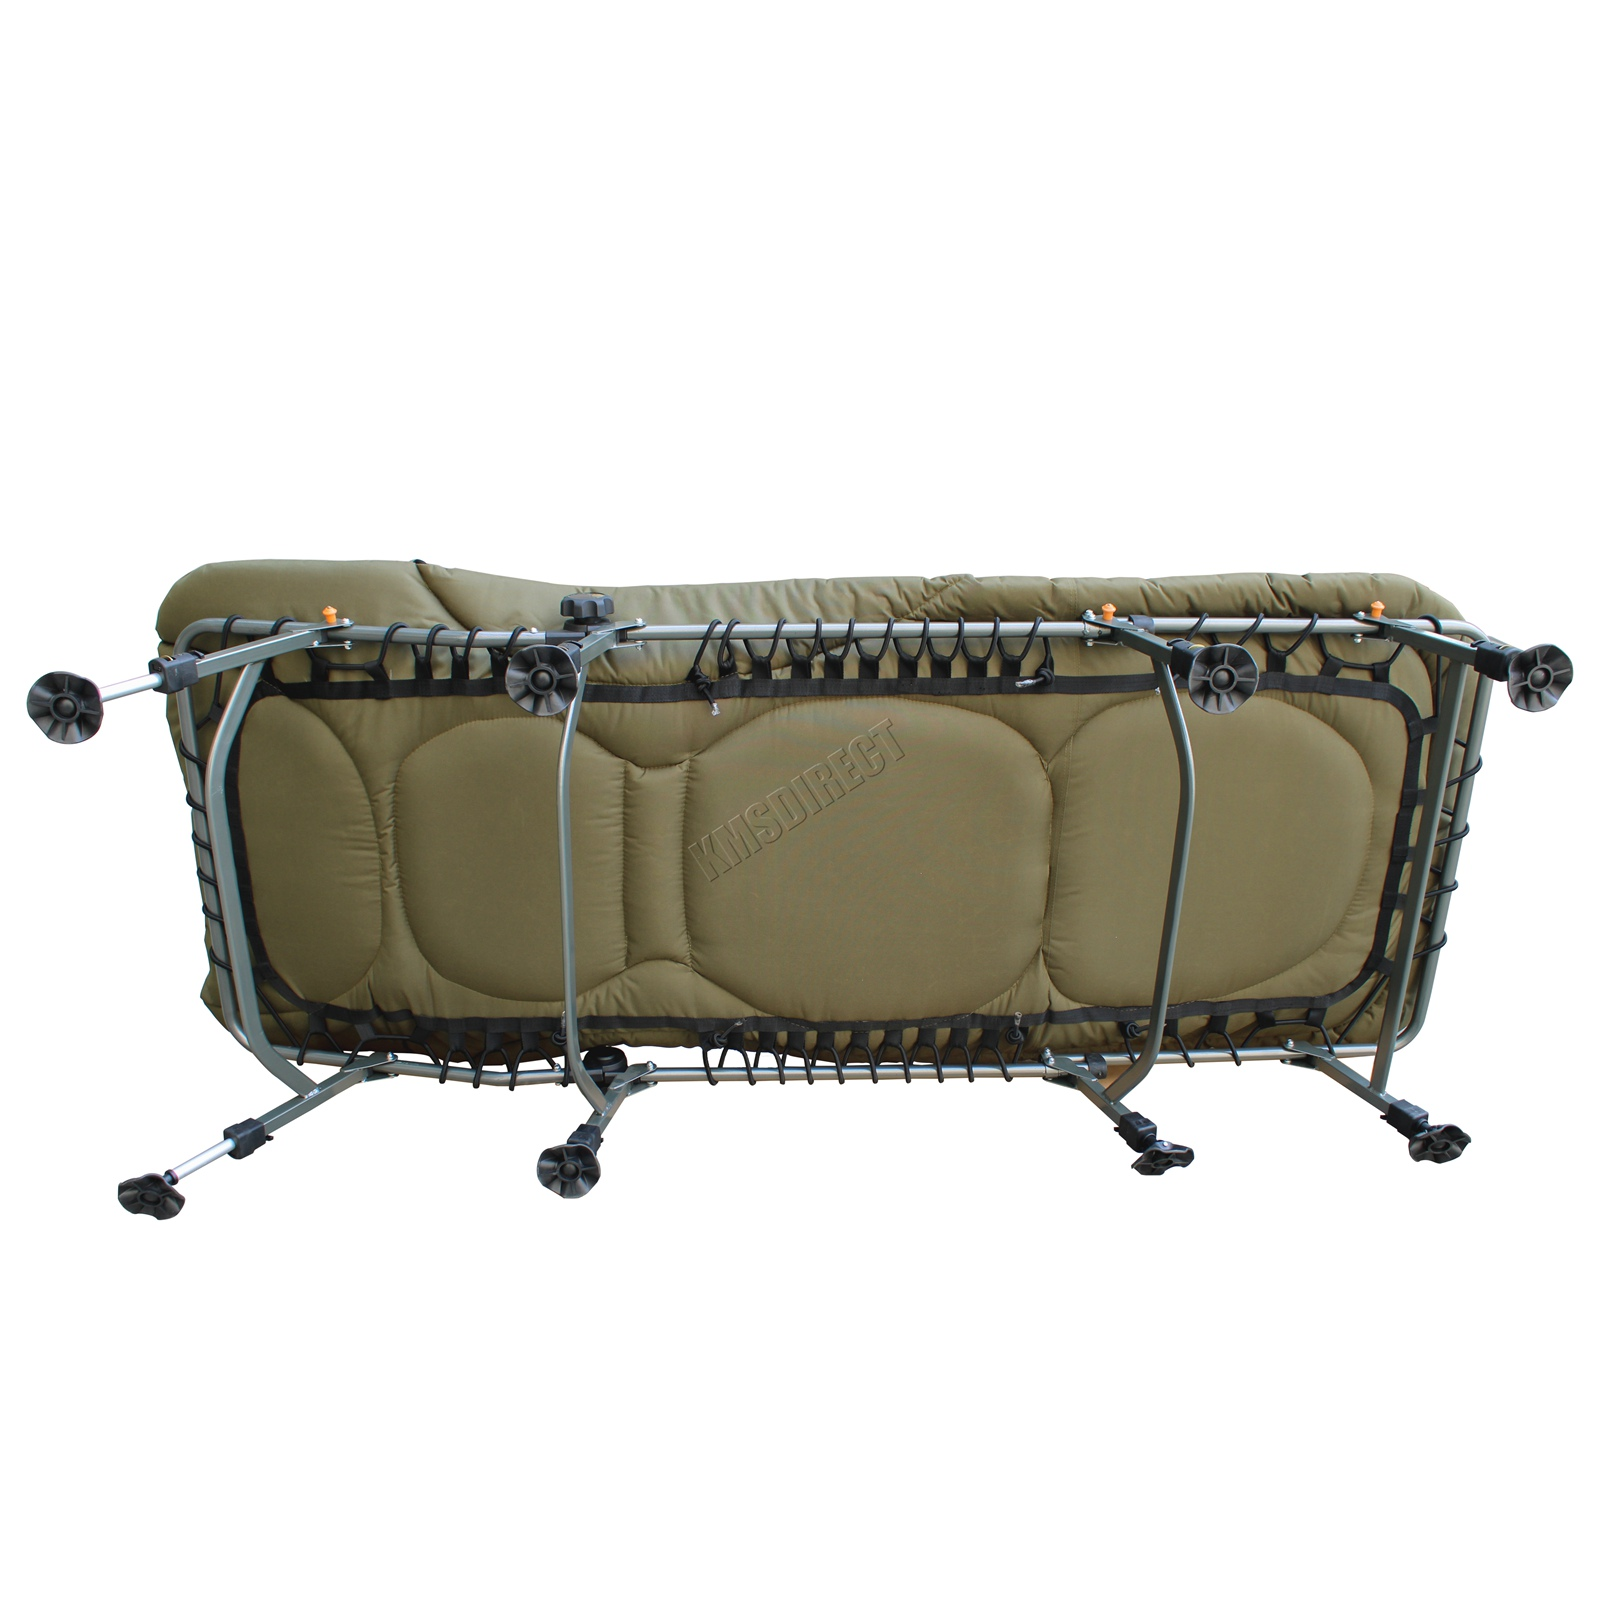 carp fishing bed chair bedchair camping heavy duty 8 adjustable